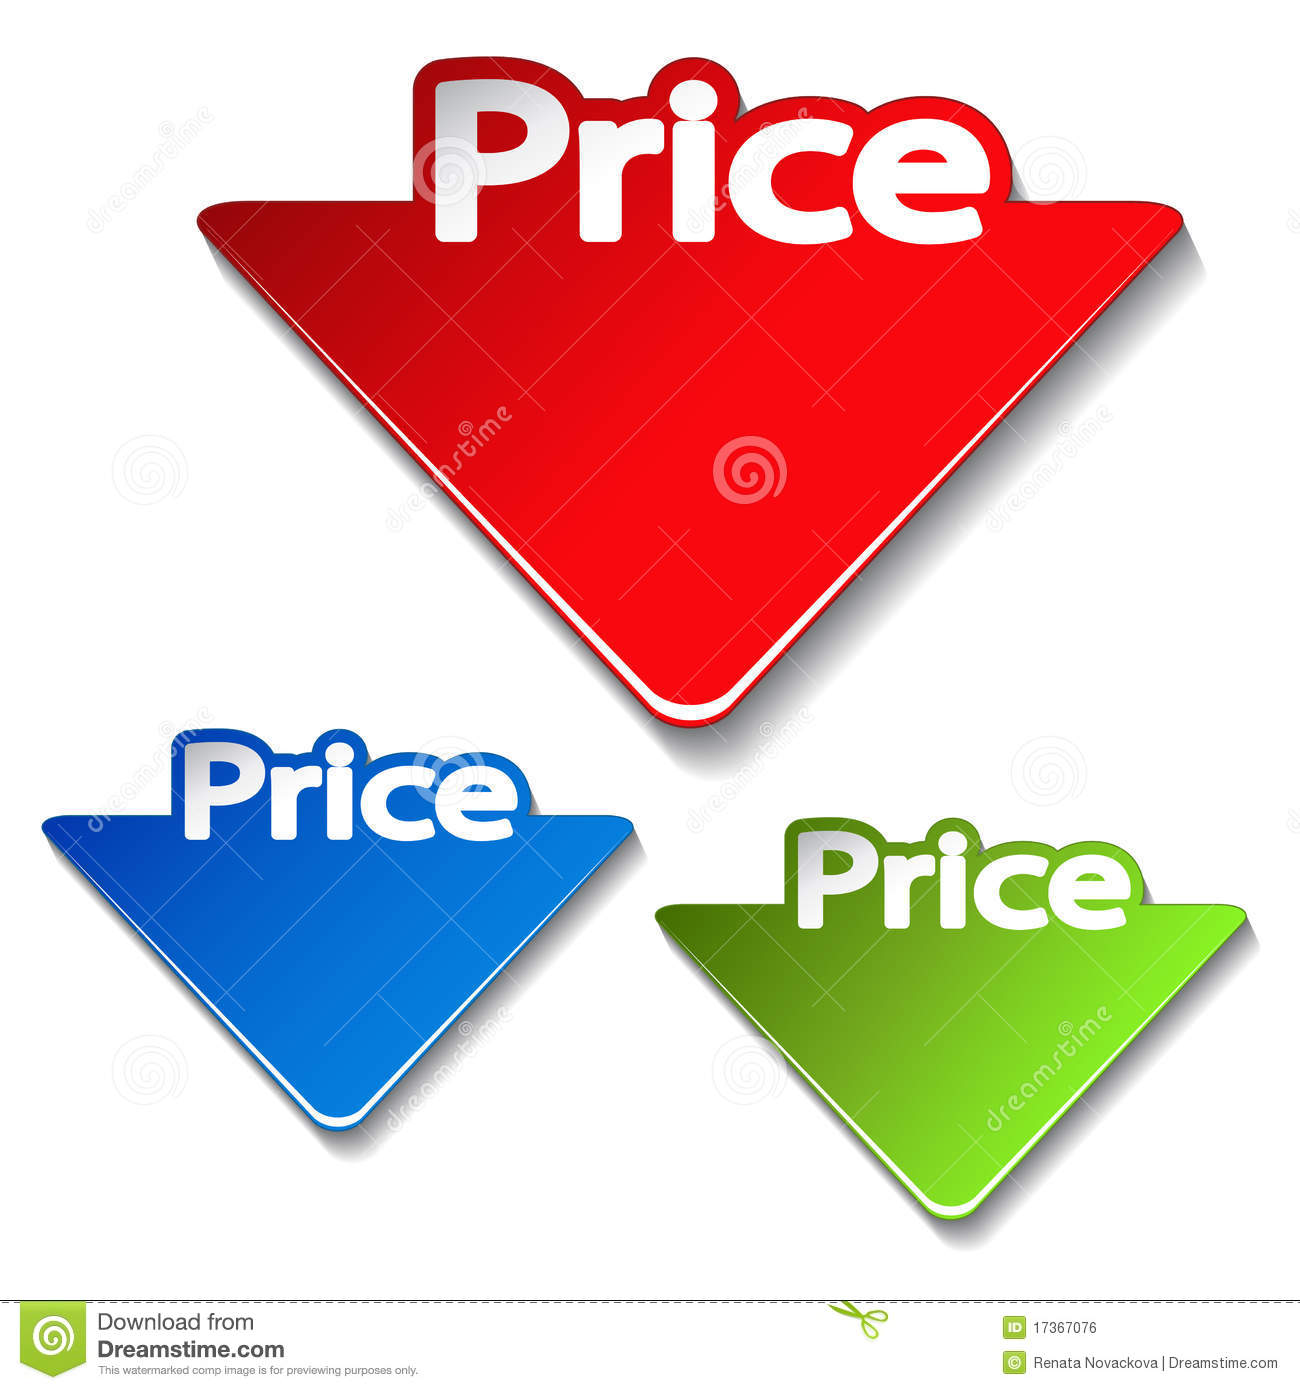 Price Tag Vector Pictures to Pin on Pinterest - PinsDaddy